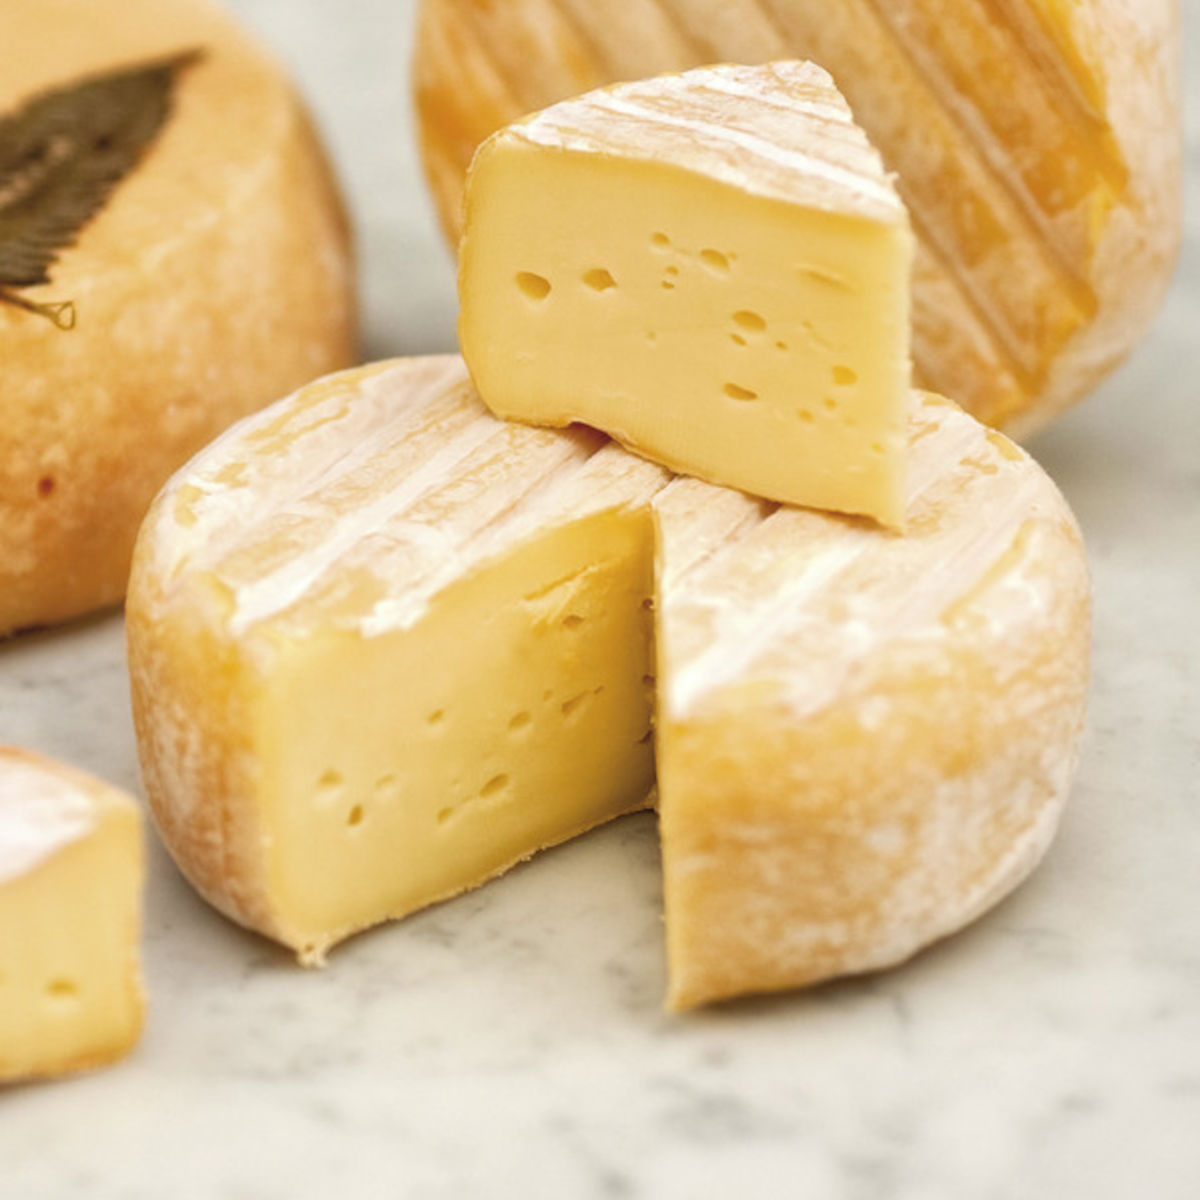 The picture shows several kinds of soft cheese